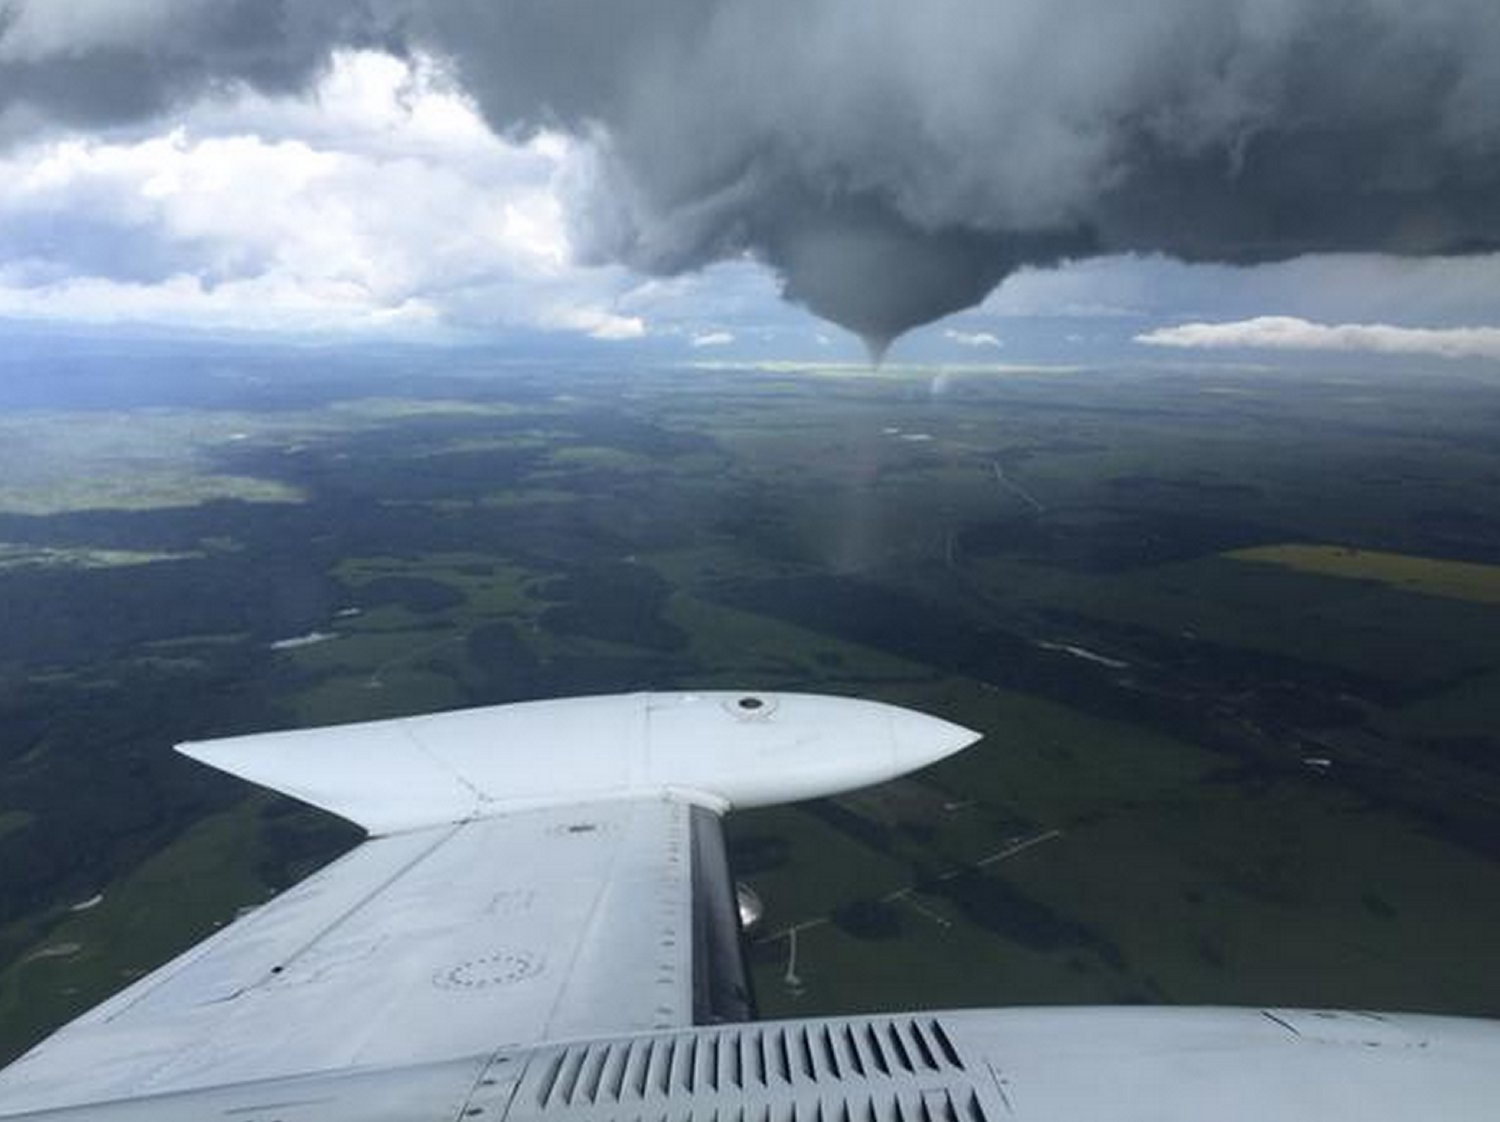 The tornado near Priddis, AB as seen from air by cloud seeders. (Source: Twitter - @Ringosmyuncle)